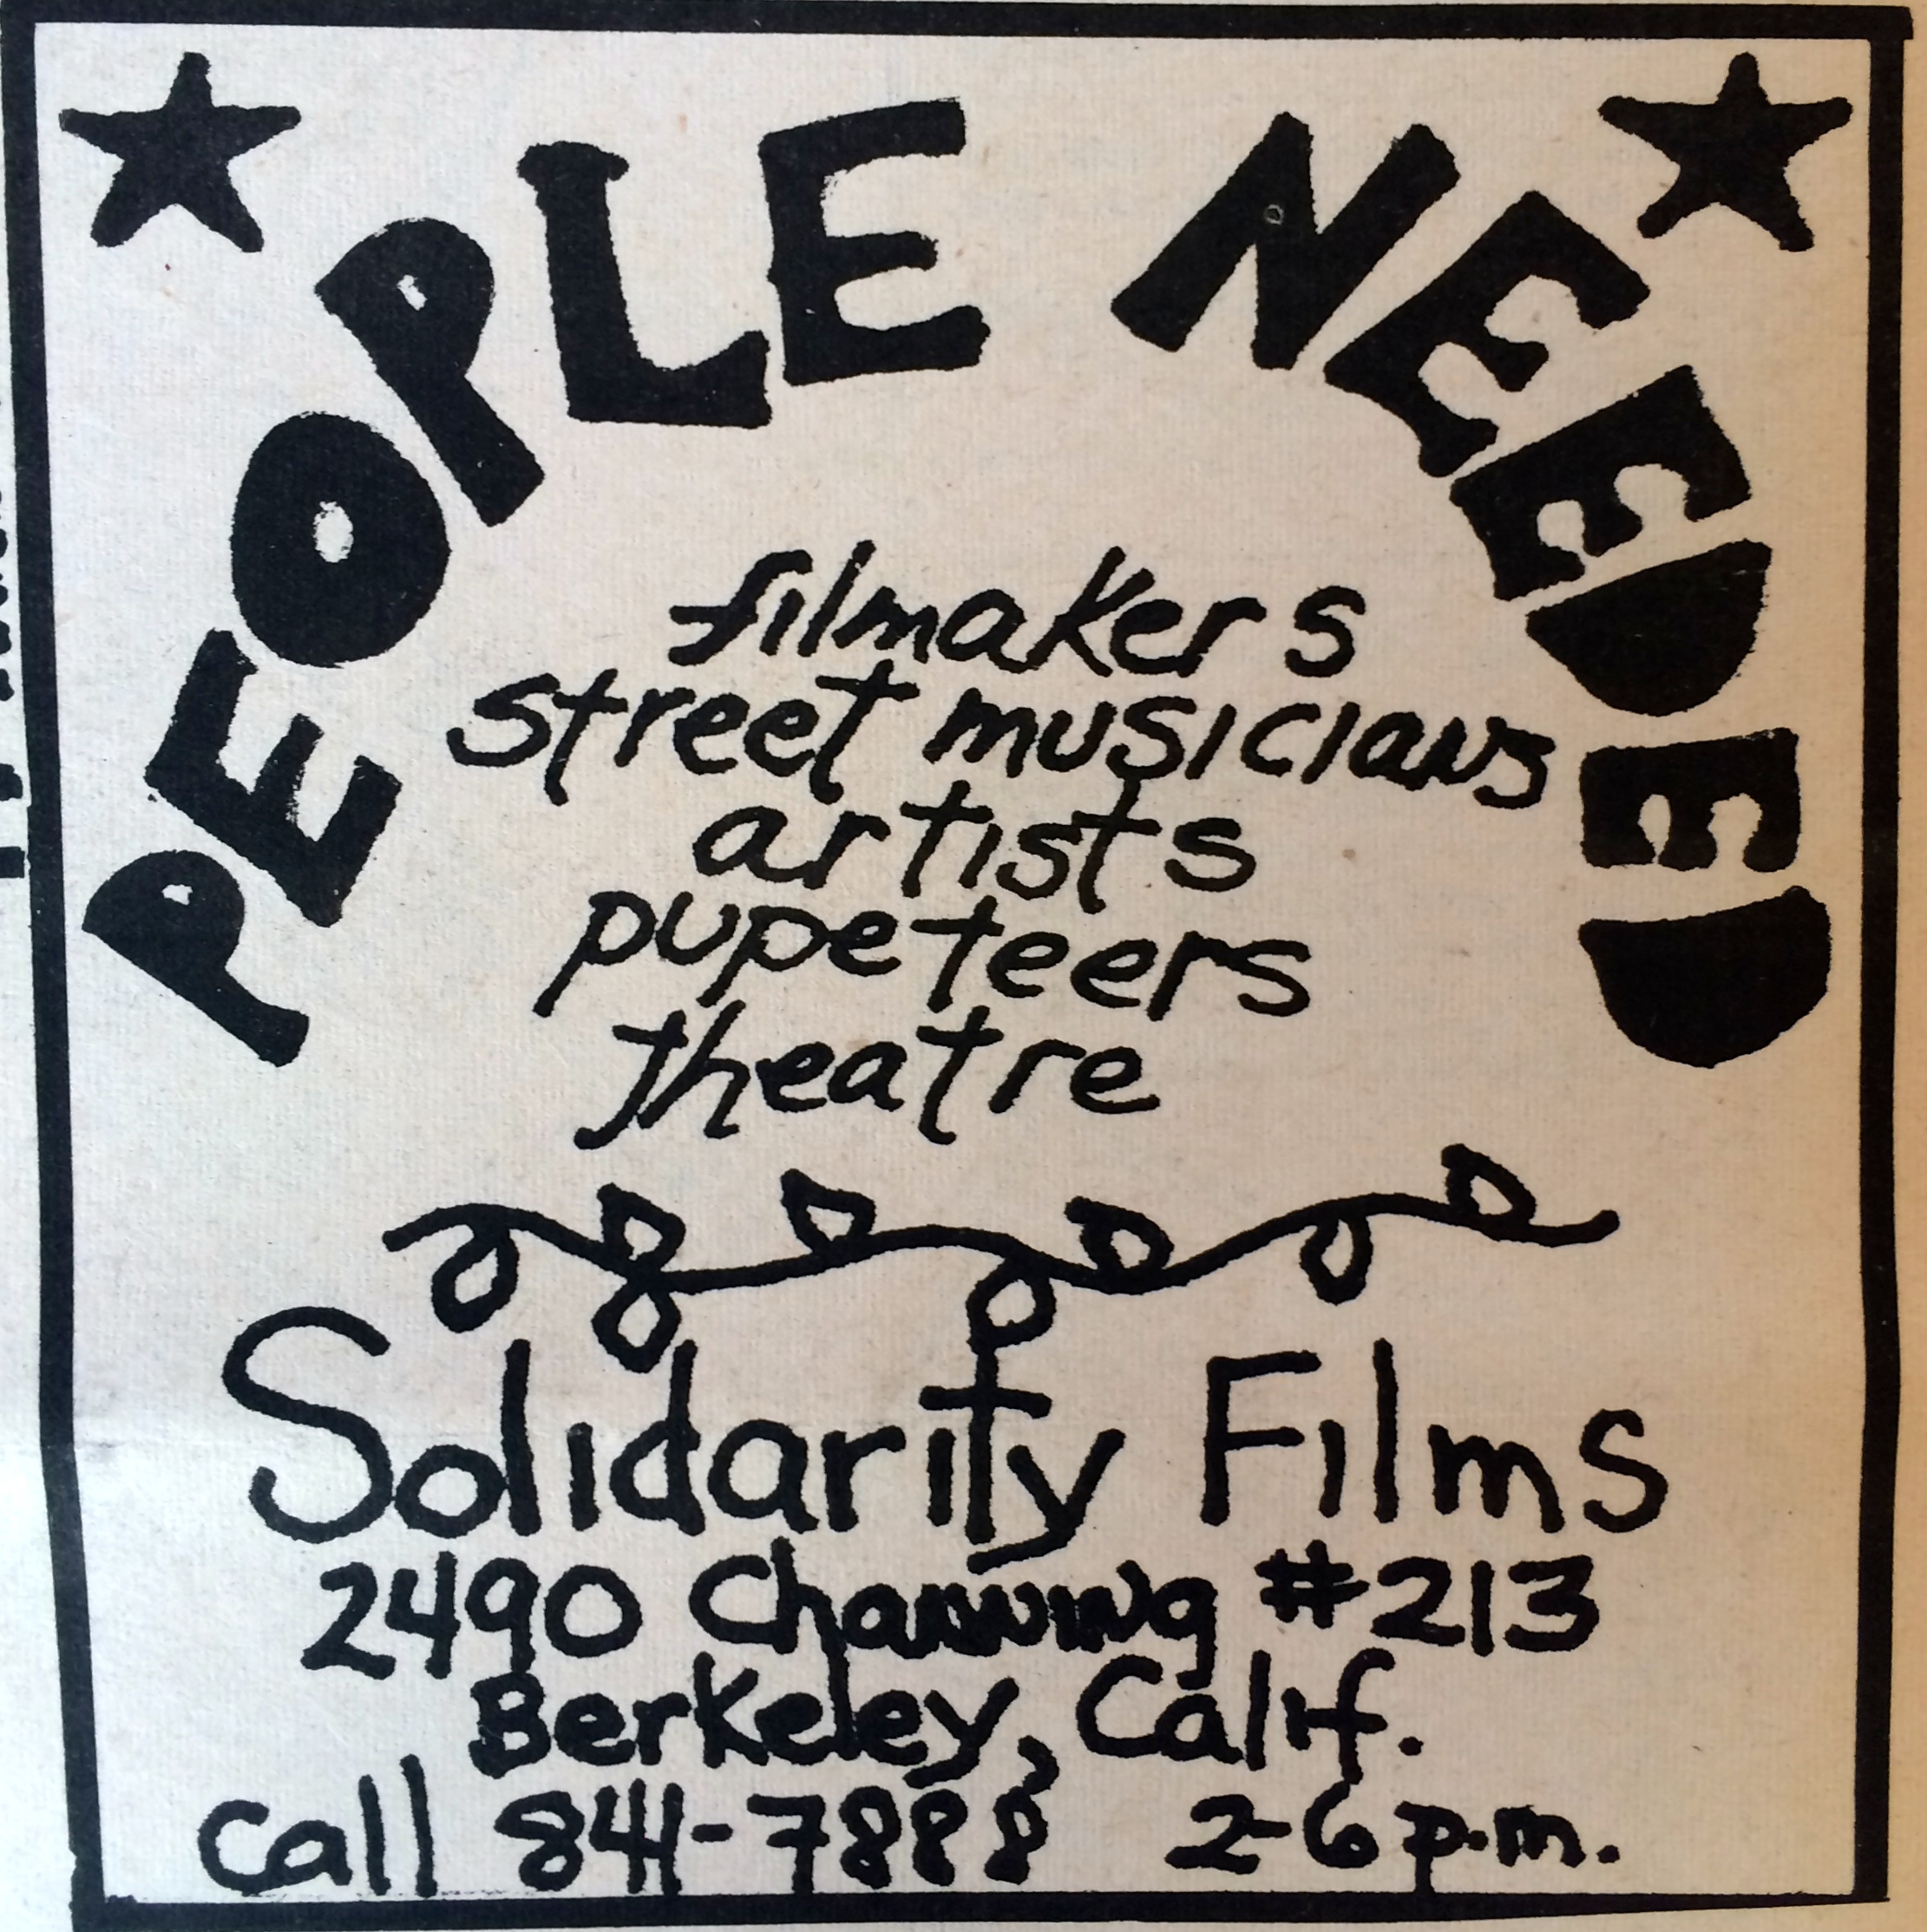 Solidarity Films Channing copy